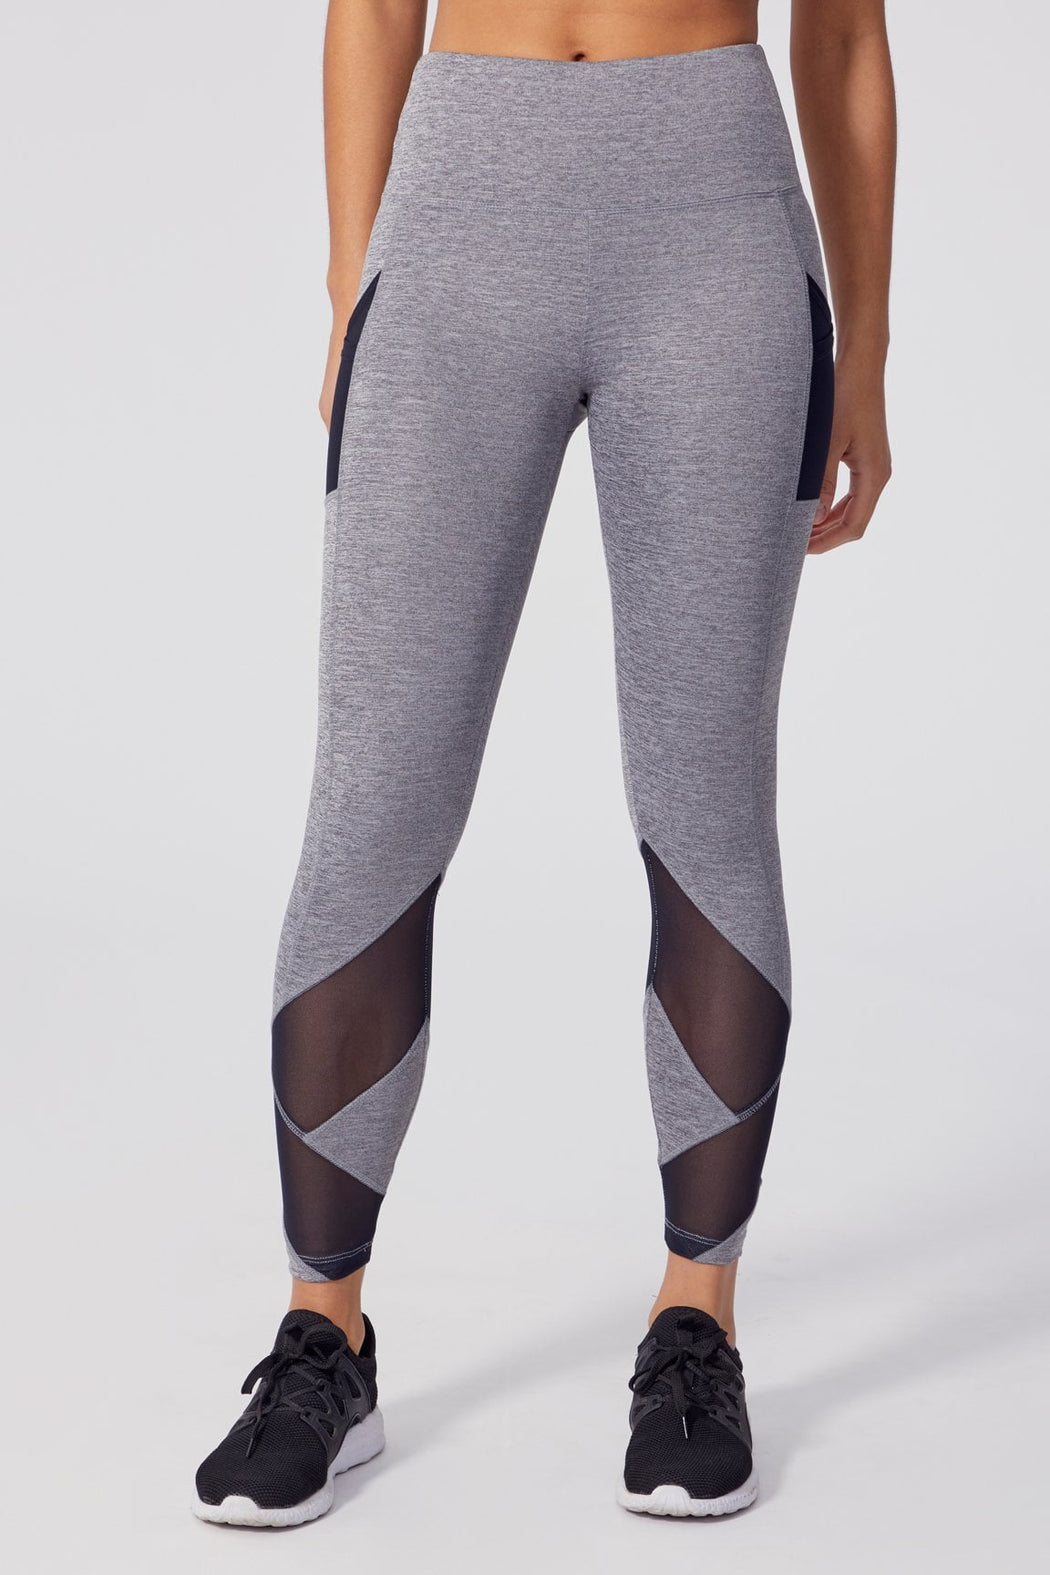 V-set Tummy Control Legging (Heather Charcoal)